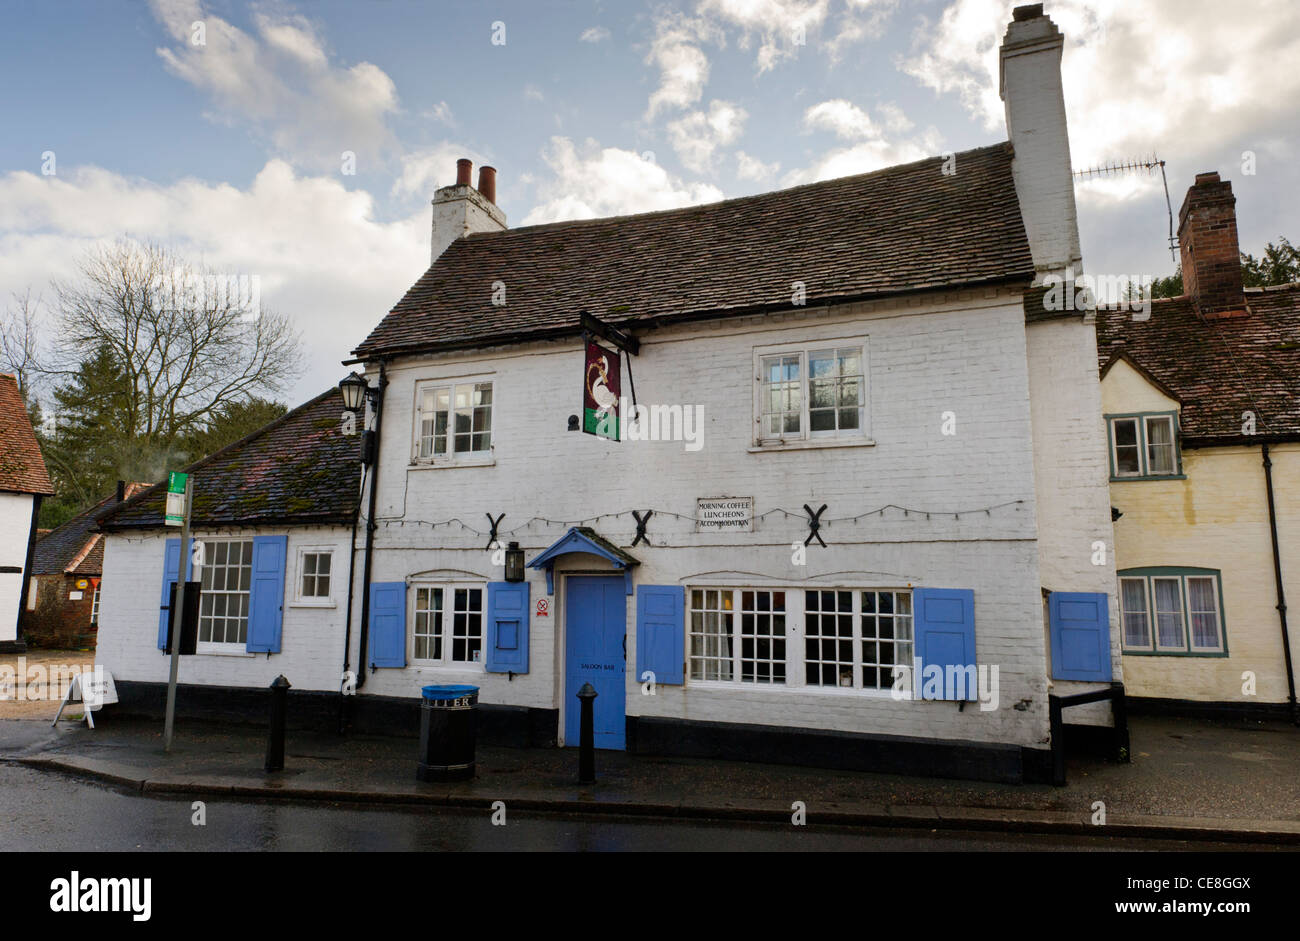 The Swan Inn public house at West Wycombe Bucks UK - Stock Image